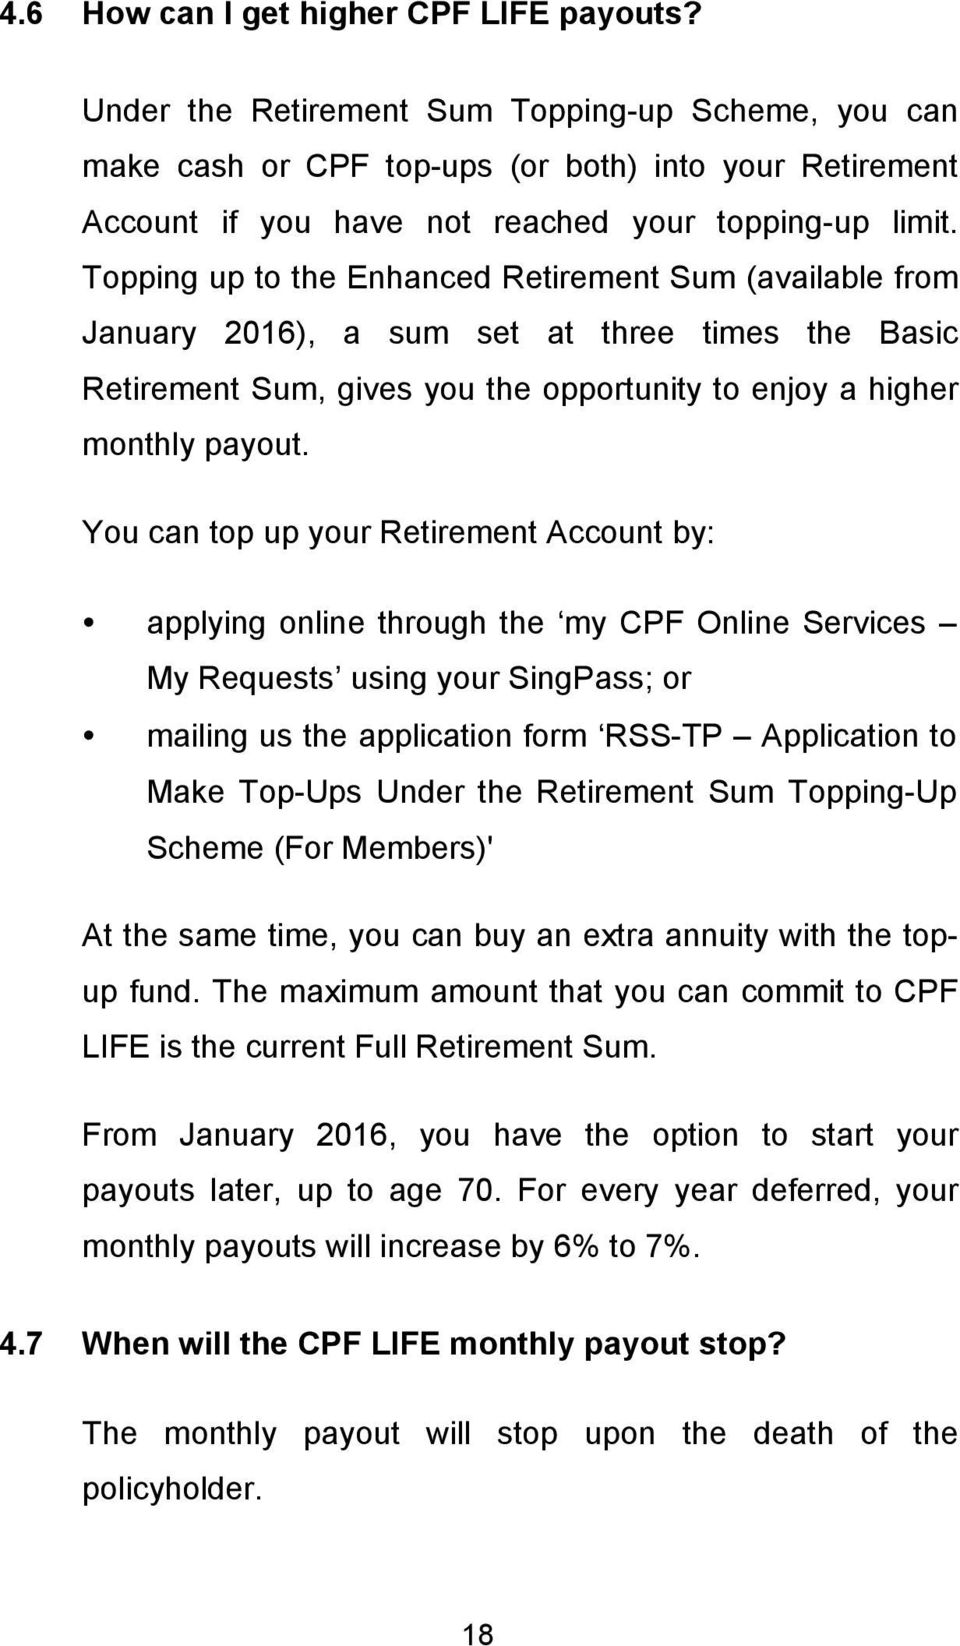 Topping up to the Enhanced Retirement Sum (available from January 2016), a sum set at three times the Basic Retirement Sum, gives you the opportunity to enjoy a higher monthly payout.